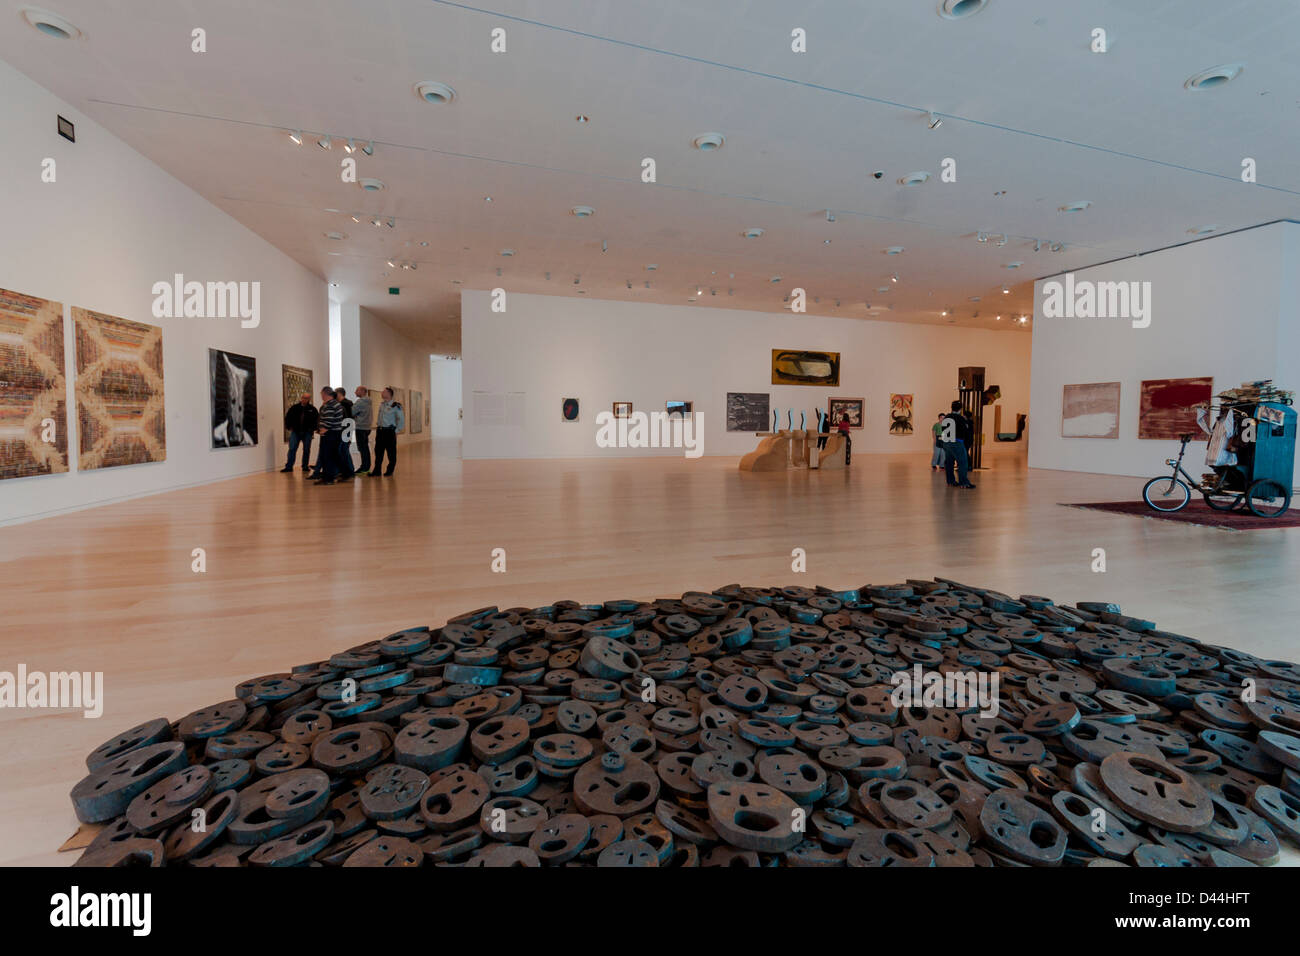 Israel. Contemporary Israeli artwork on display at the Tel-Aviv museum of art. - Stock Image